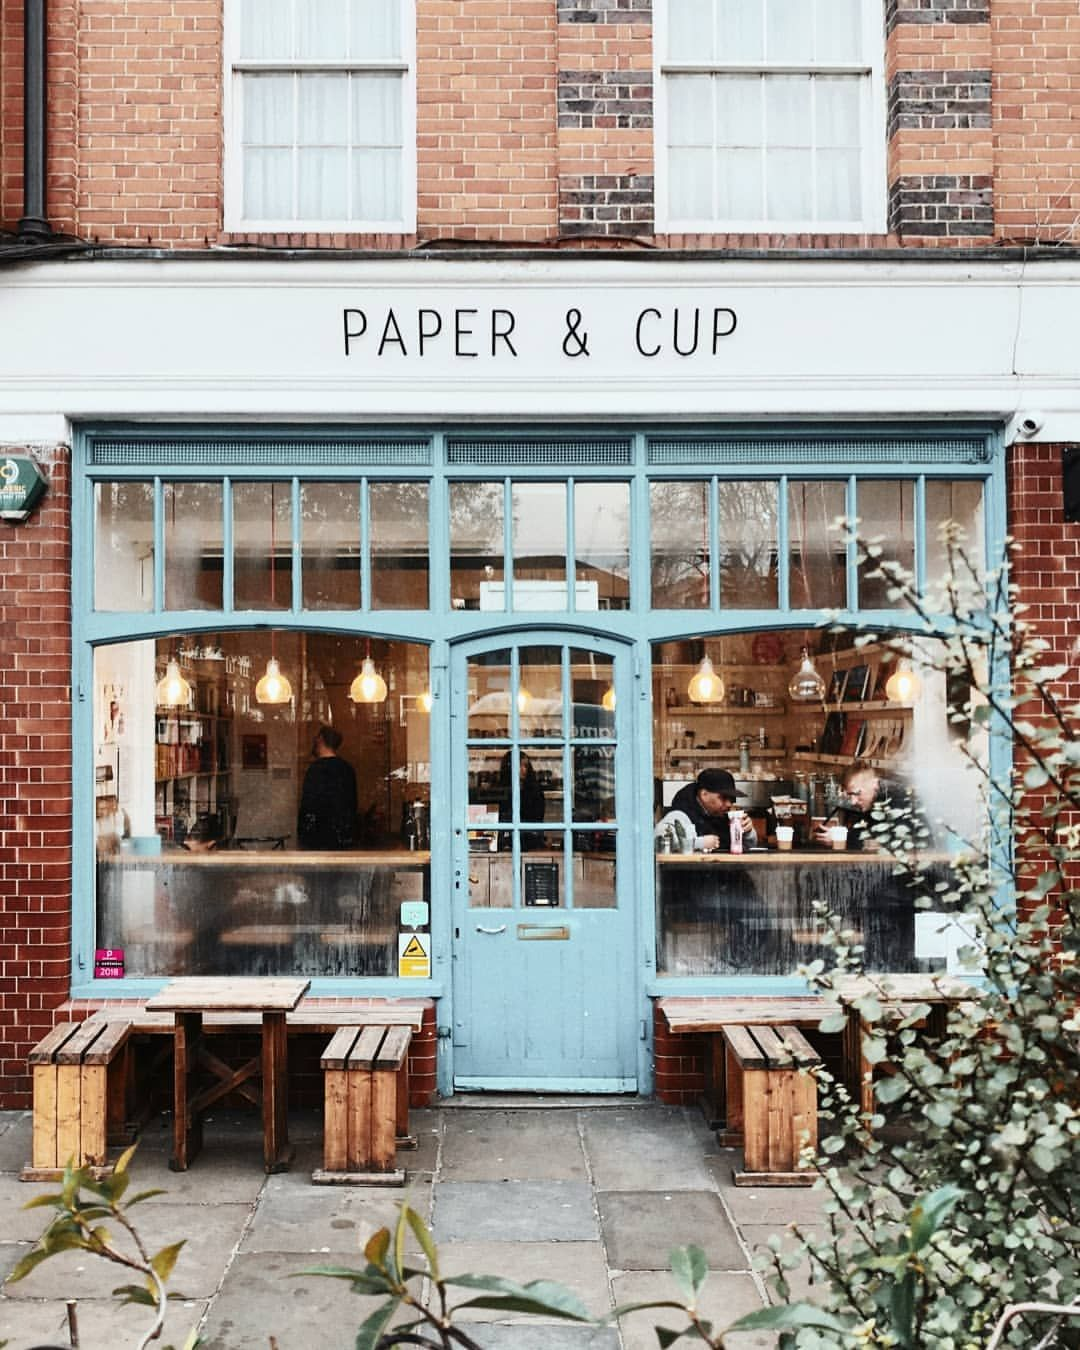 Cute Brick Exterior With Pale Turquoise Door And Windows Storefront Design Cafe Exterior Coffee Shop Aesthetic